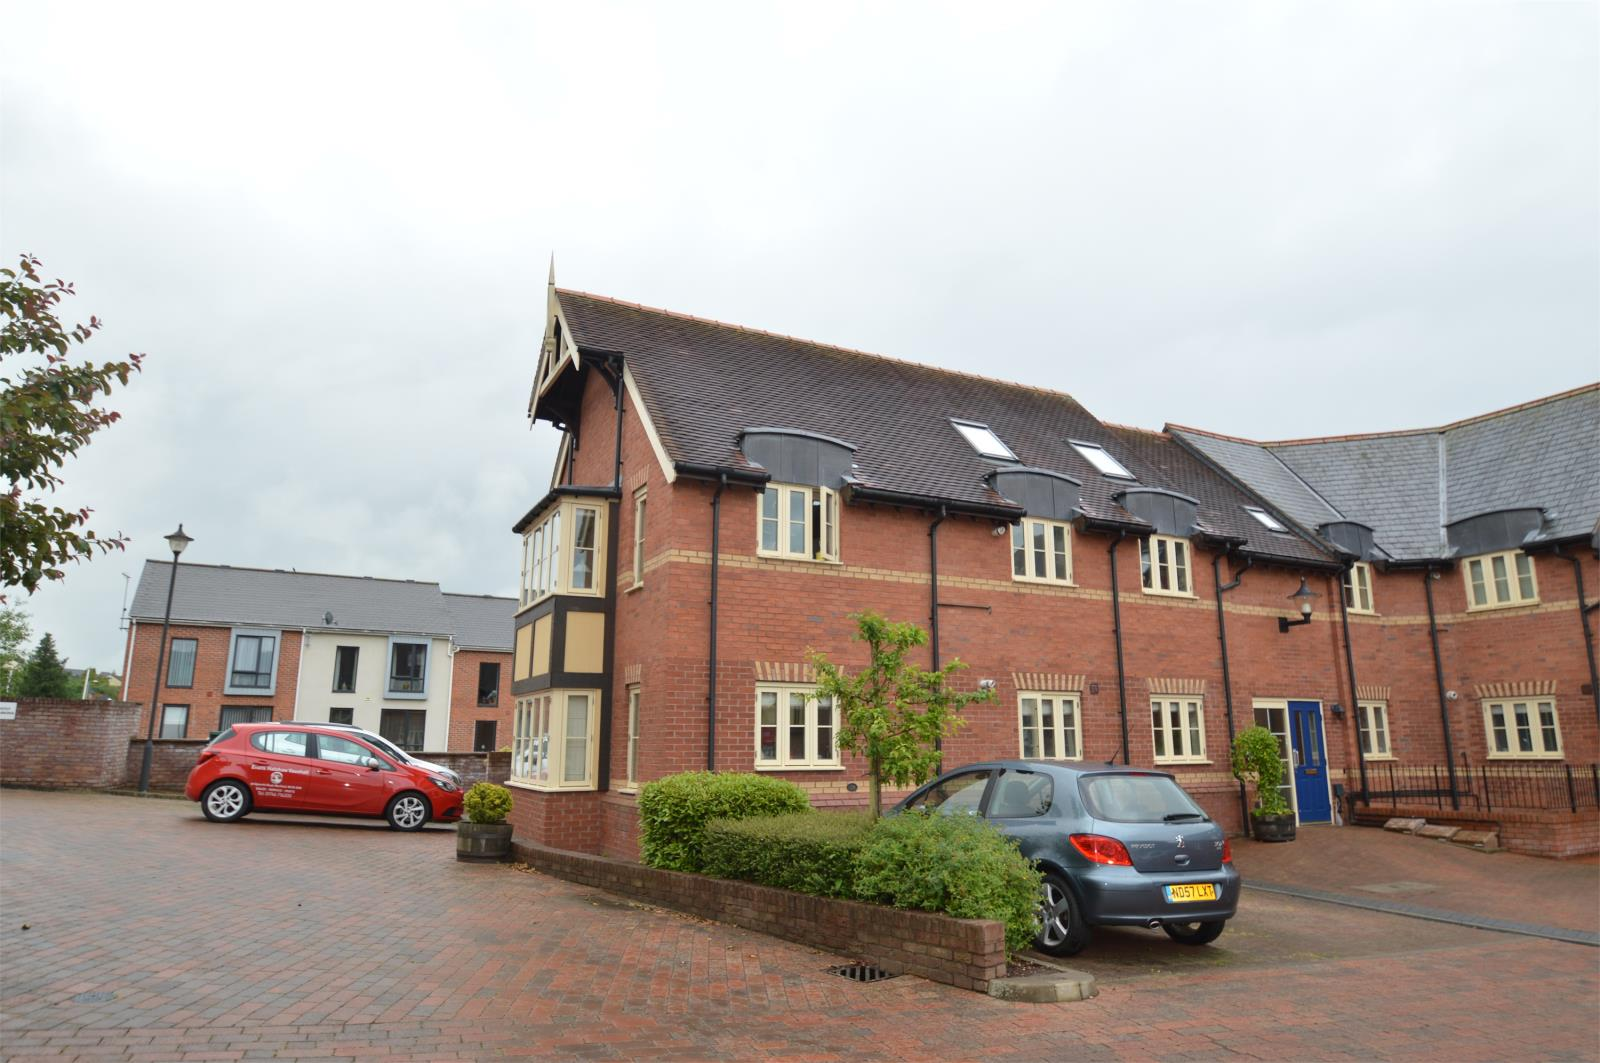 2 Bedrooms Flat Share for rent in 30 Townsend Close, Ludlow, Shropshire, SY8